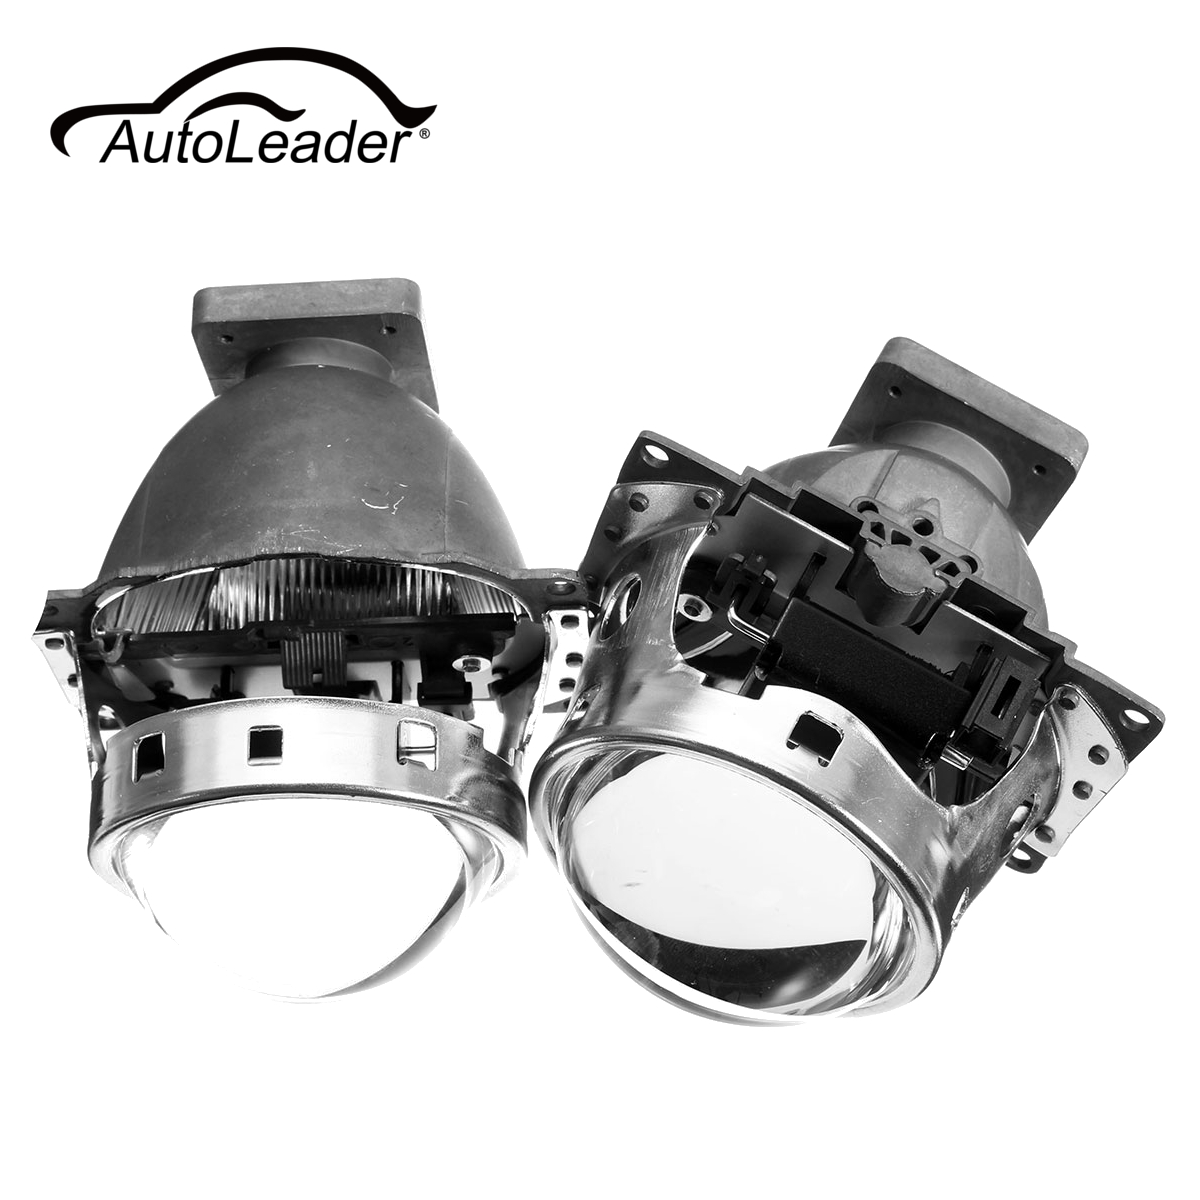 AutoLeader Hid-Bi Xenon Projector Lens LHD For Car Headlight 3.0 Koito Q5 35W Can Use with D1S D2S D2H D3S D4S Headlamp 2 5 mini bi xenon projector lens can use with d2s d2h hid xenon bulb for h4 car headlamp easy install